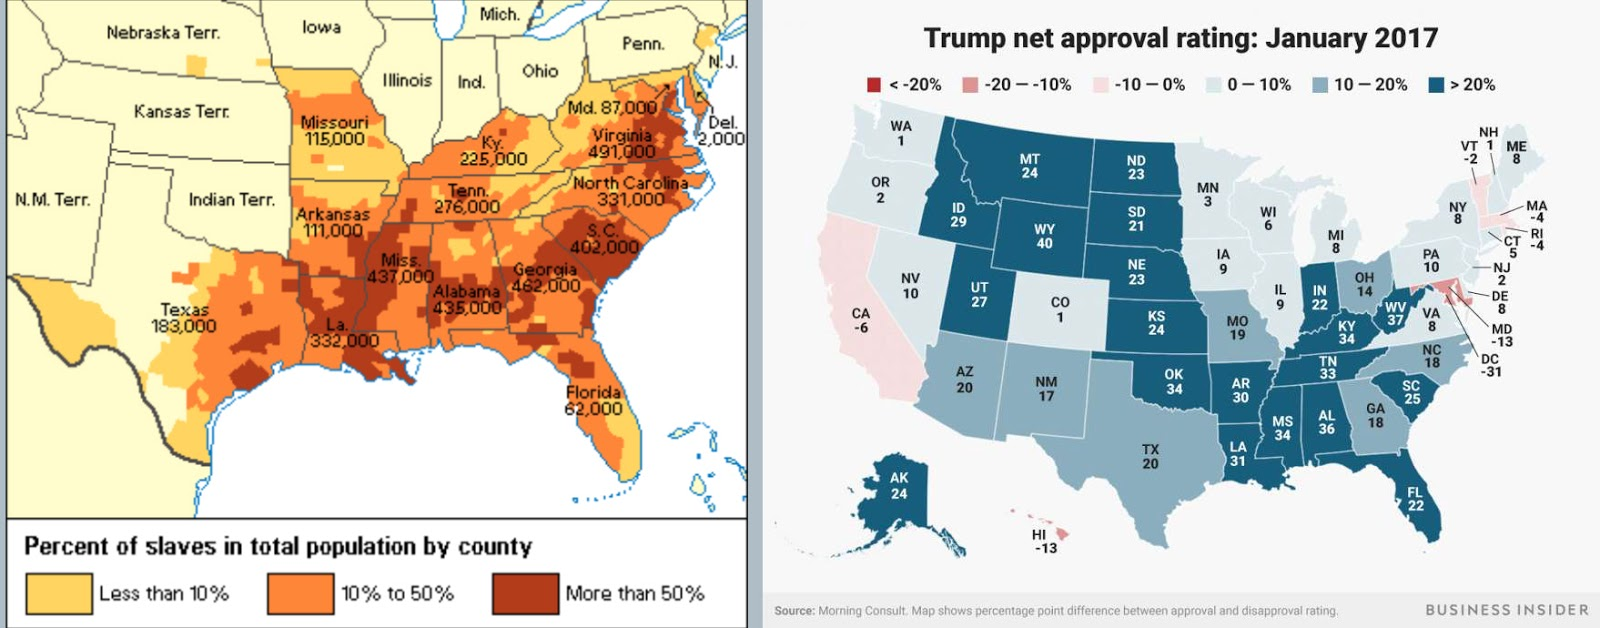 expanding to include rural states formed since 1860 states with similar ideology combine maps of the slave states in the civil war to trump s support